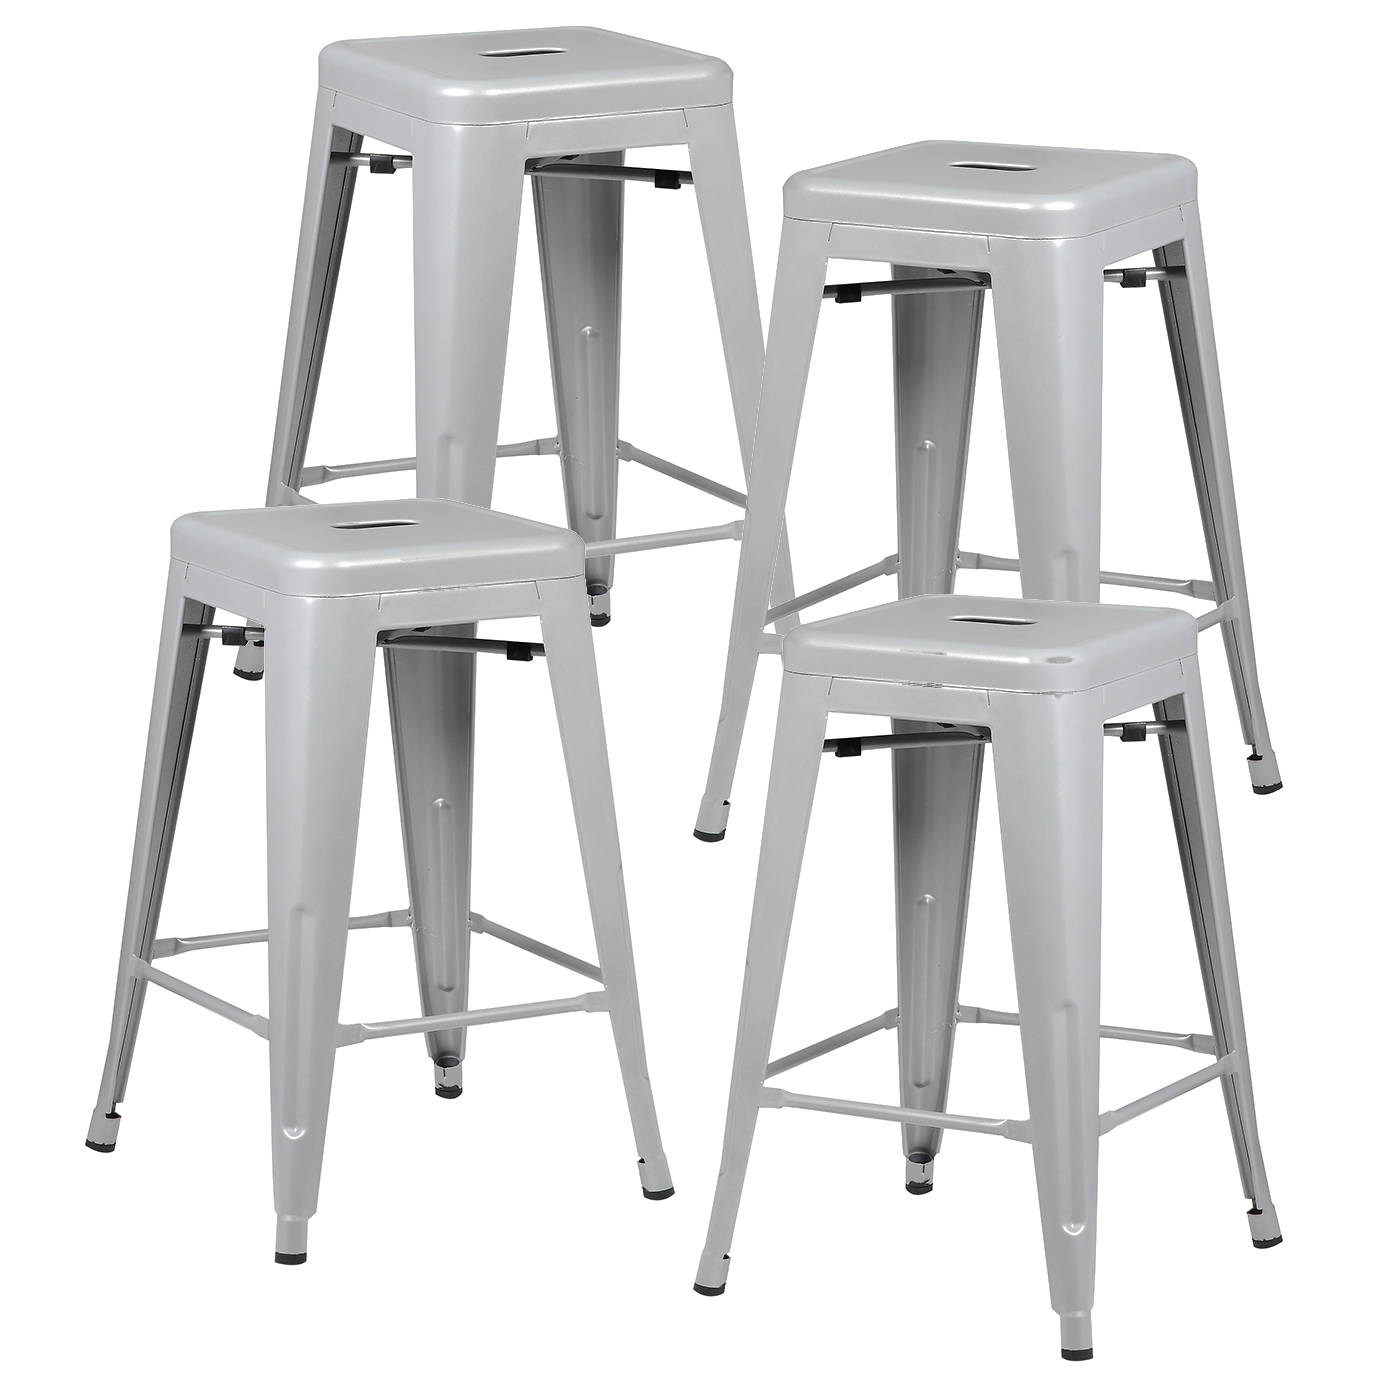 Incredible 4 Edgemod Furniture Trattoria Grey 24 Inch Counter Height Stools Caraccident5 Cool Chair Designs And Ideas Caraccident5Info